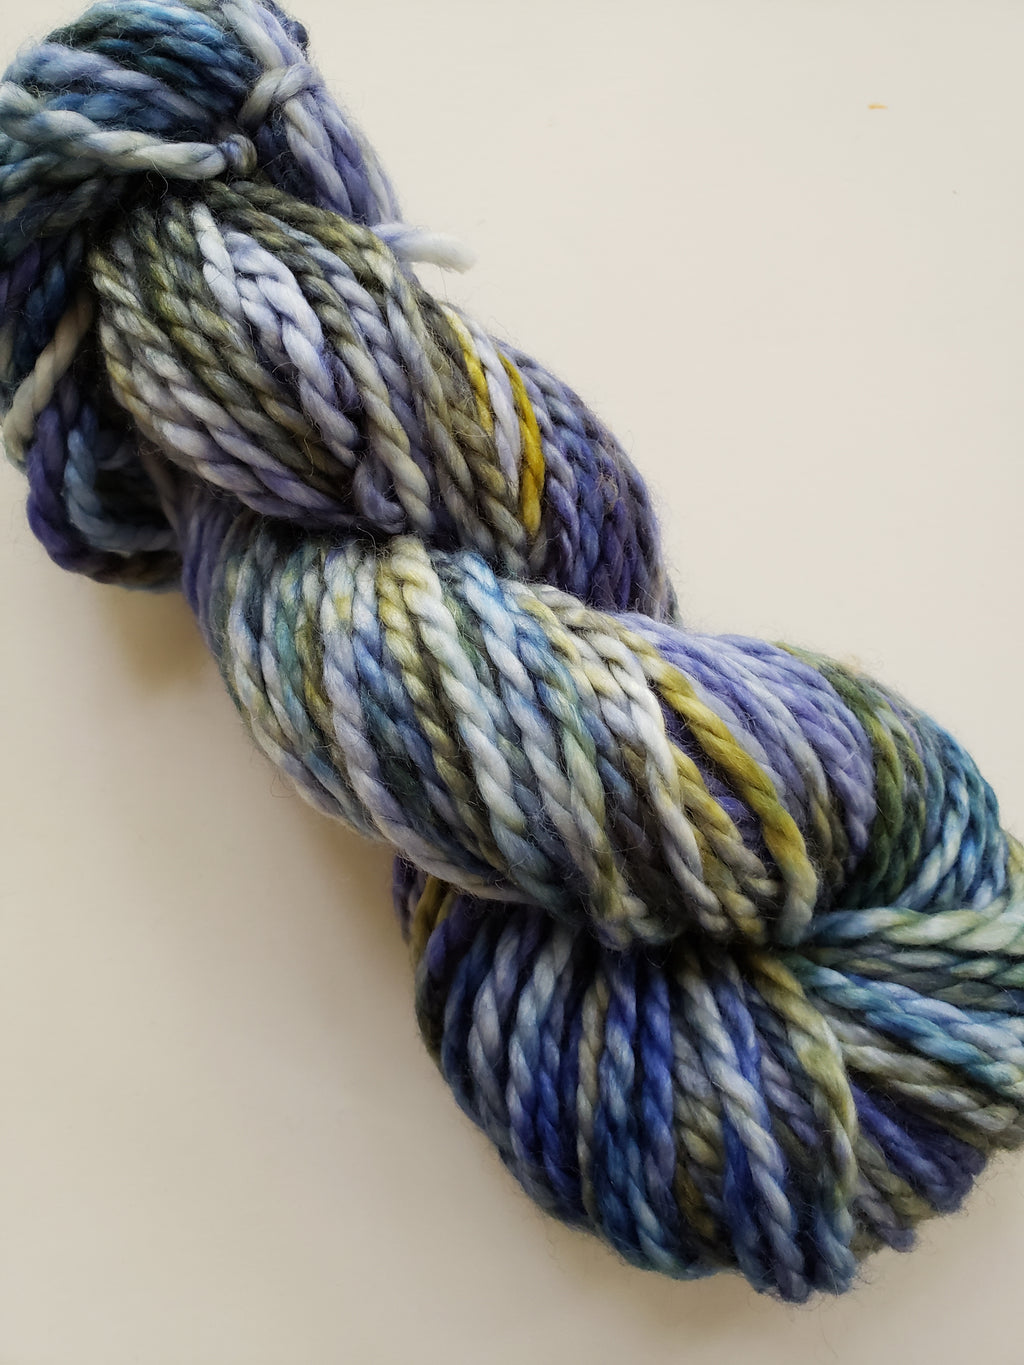 STARRY NIGHT - BIG TWISTY 2 PLY -  Hand Dyed Shades of Blue, Yellow and Cream Chunky Yarn for Rug Hooking - RSS227